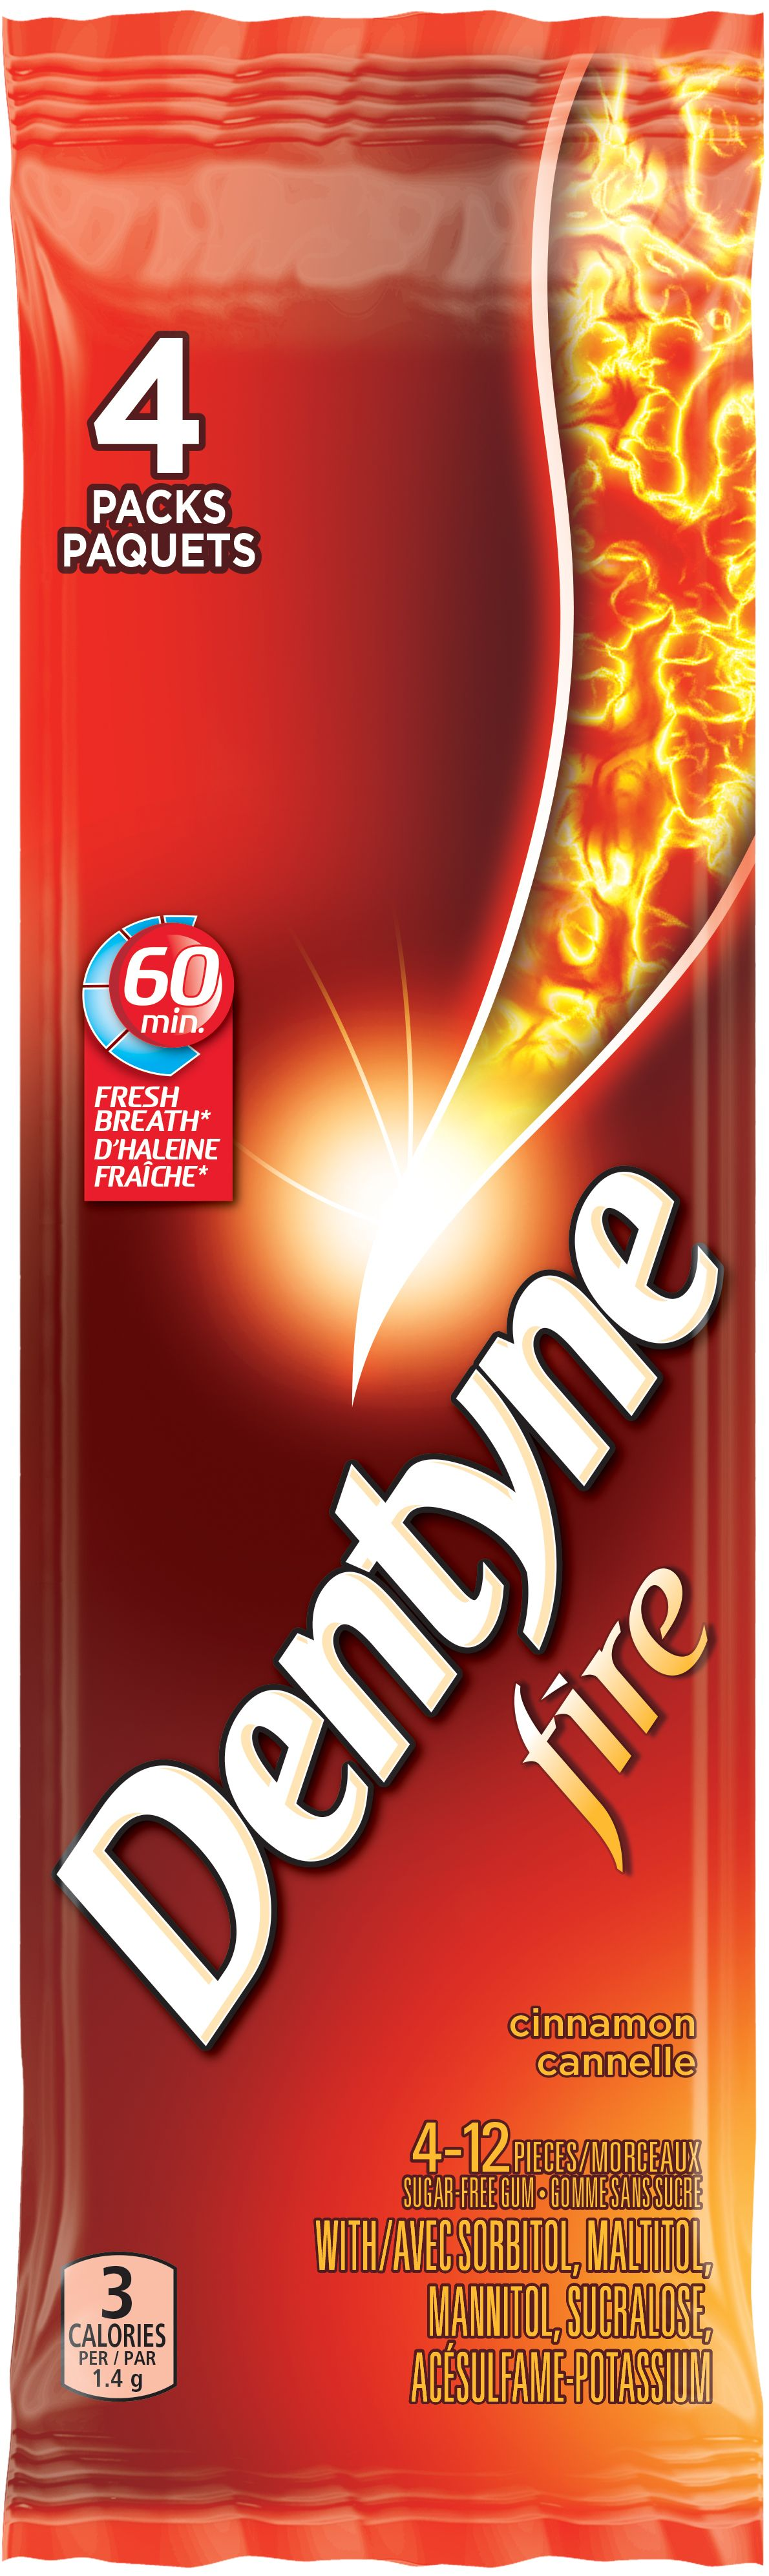 DENTYNE Fire ZIMT 48 1N